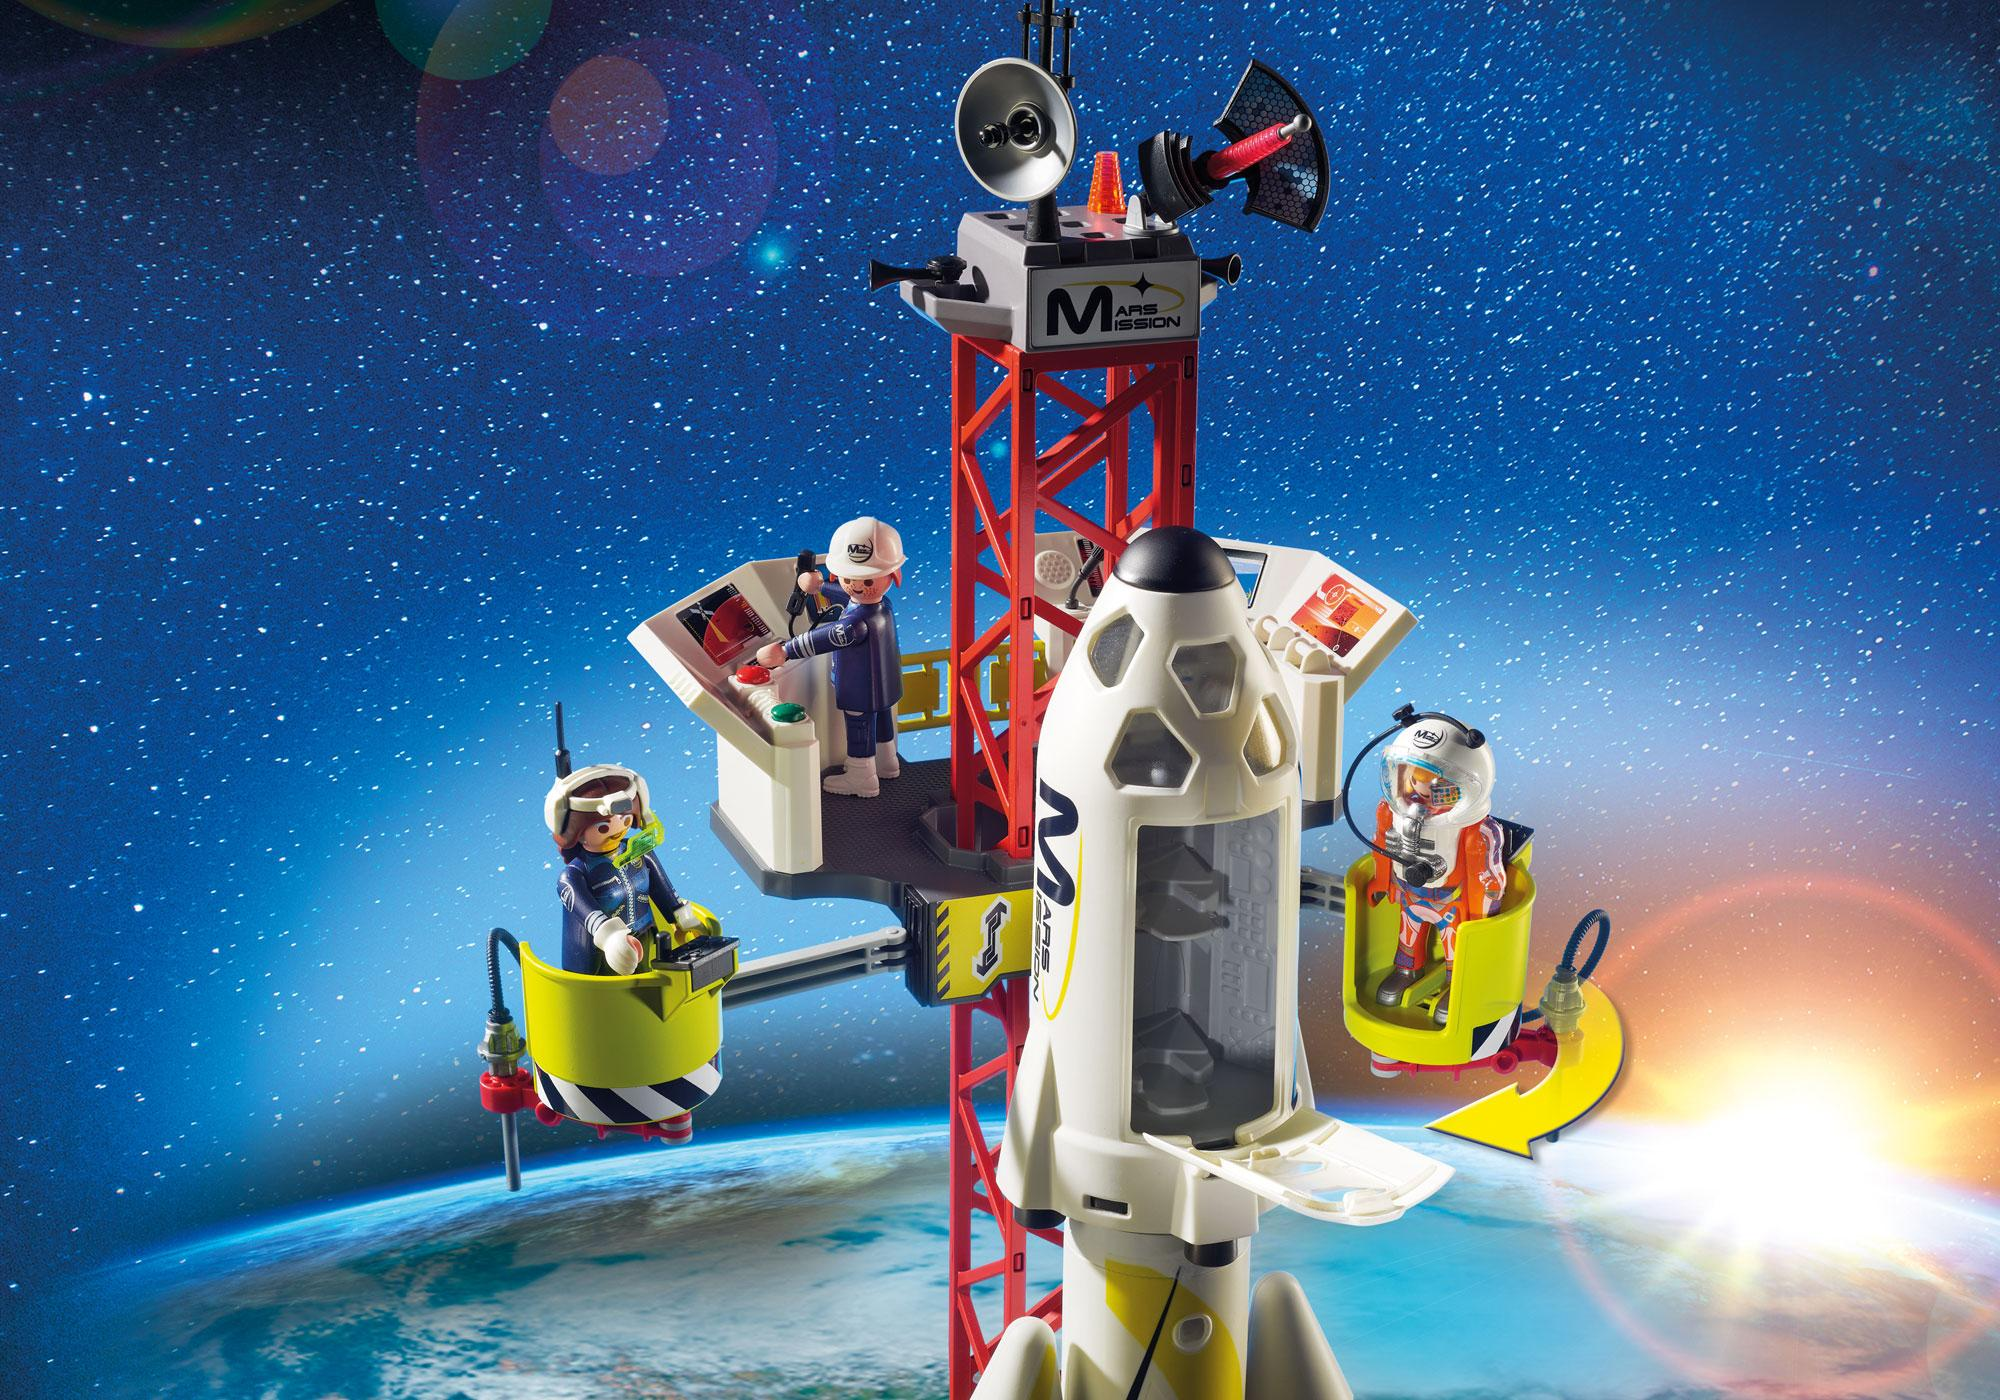 http://media.playmobil.com/i/playmobil/9488_product_extra1/Mission Rocket with Launch Site